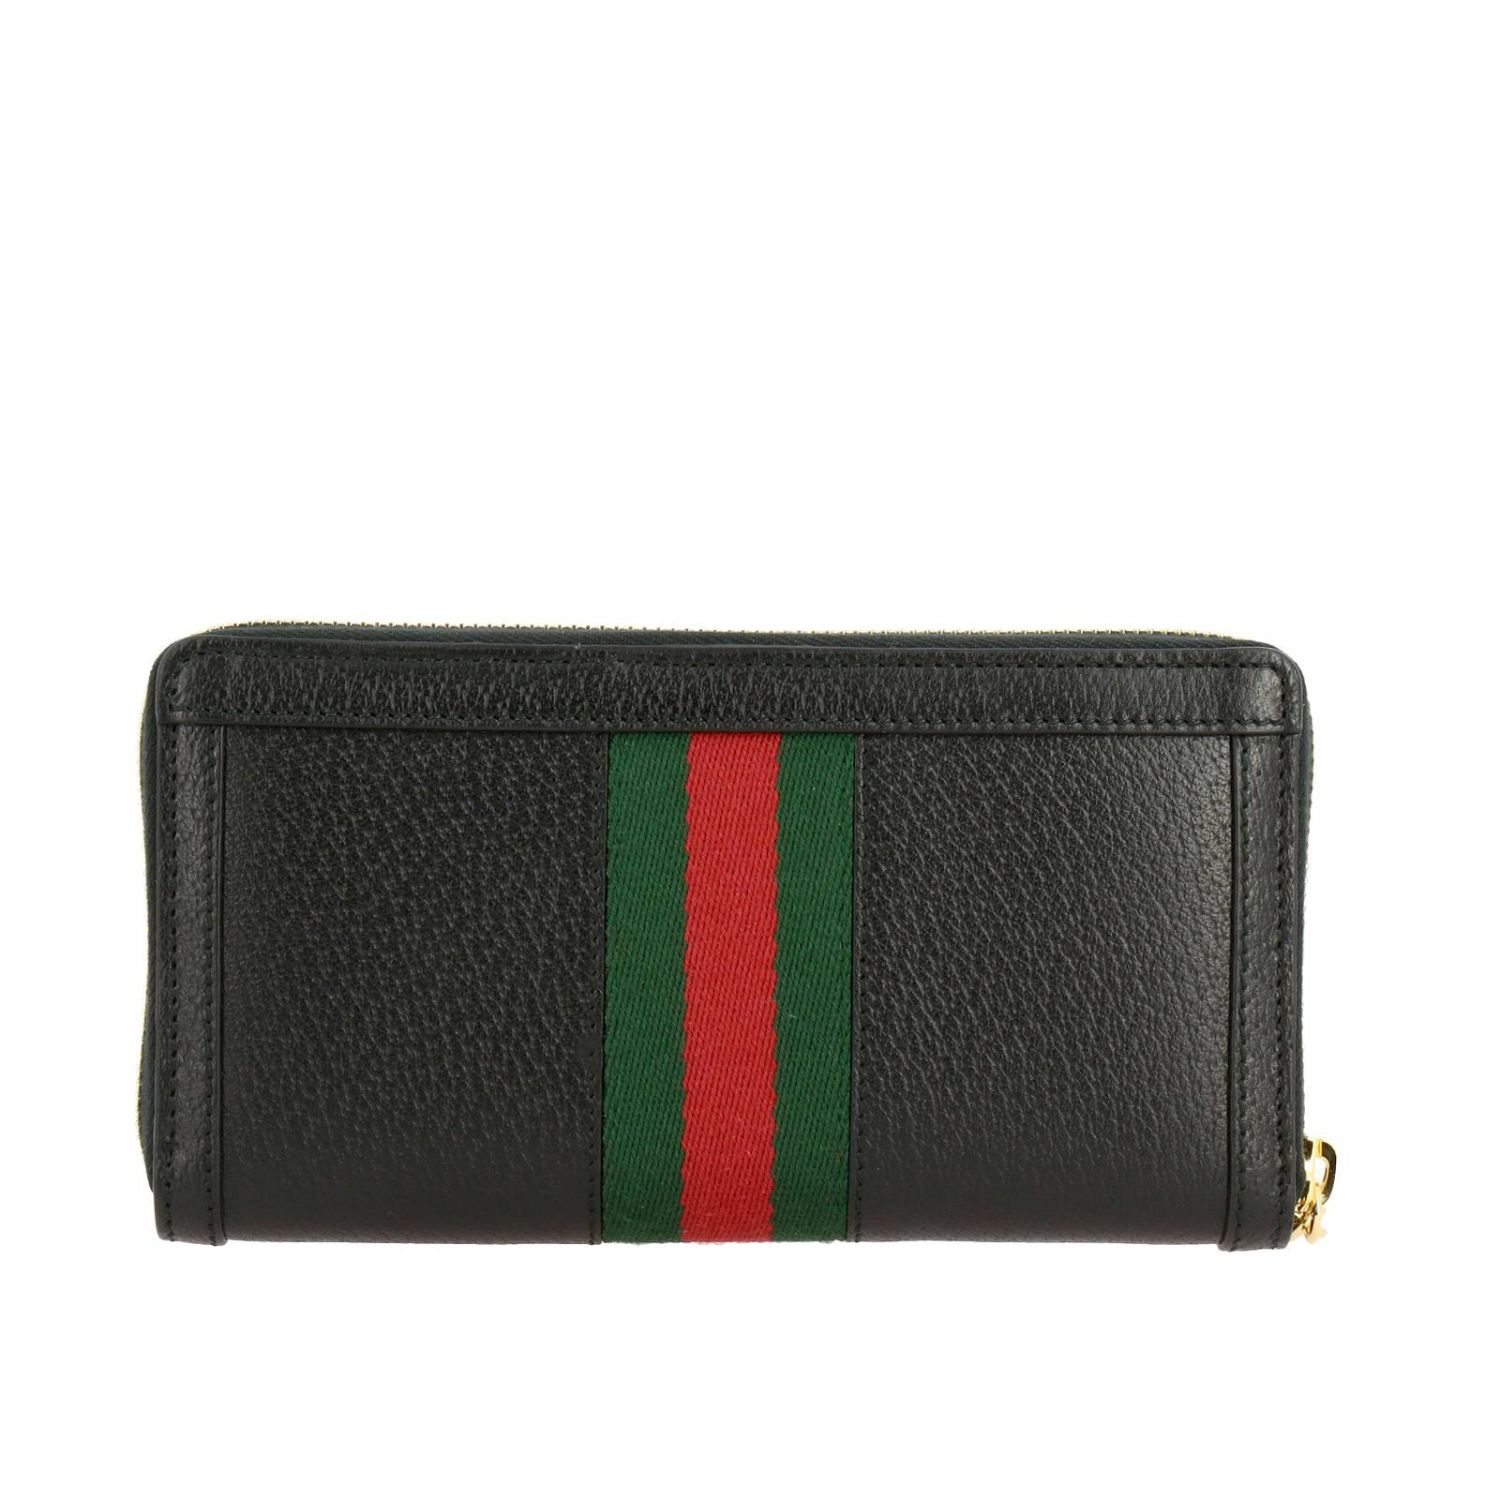 Wallet Gucci: Ophidia Gucci textured leather wallet with Web band and GG monogram black 3